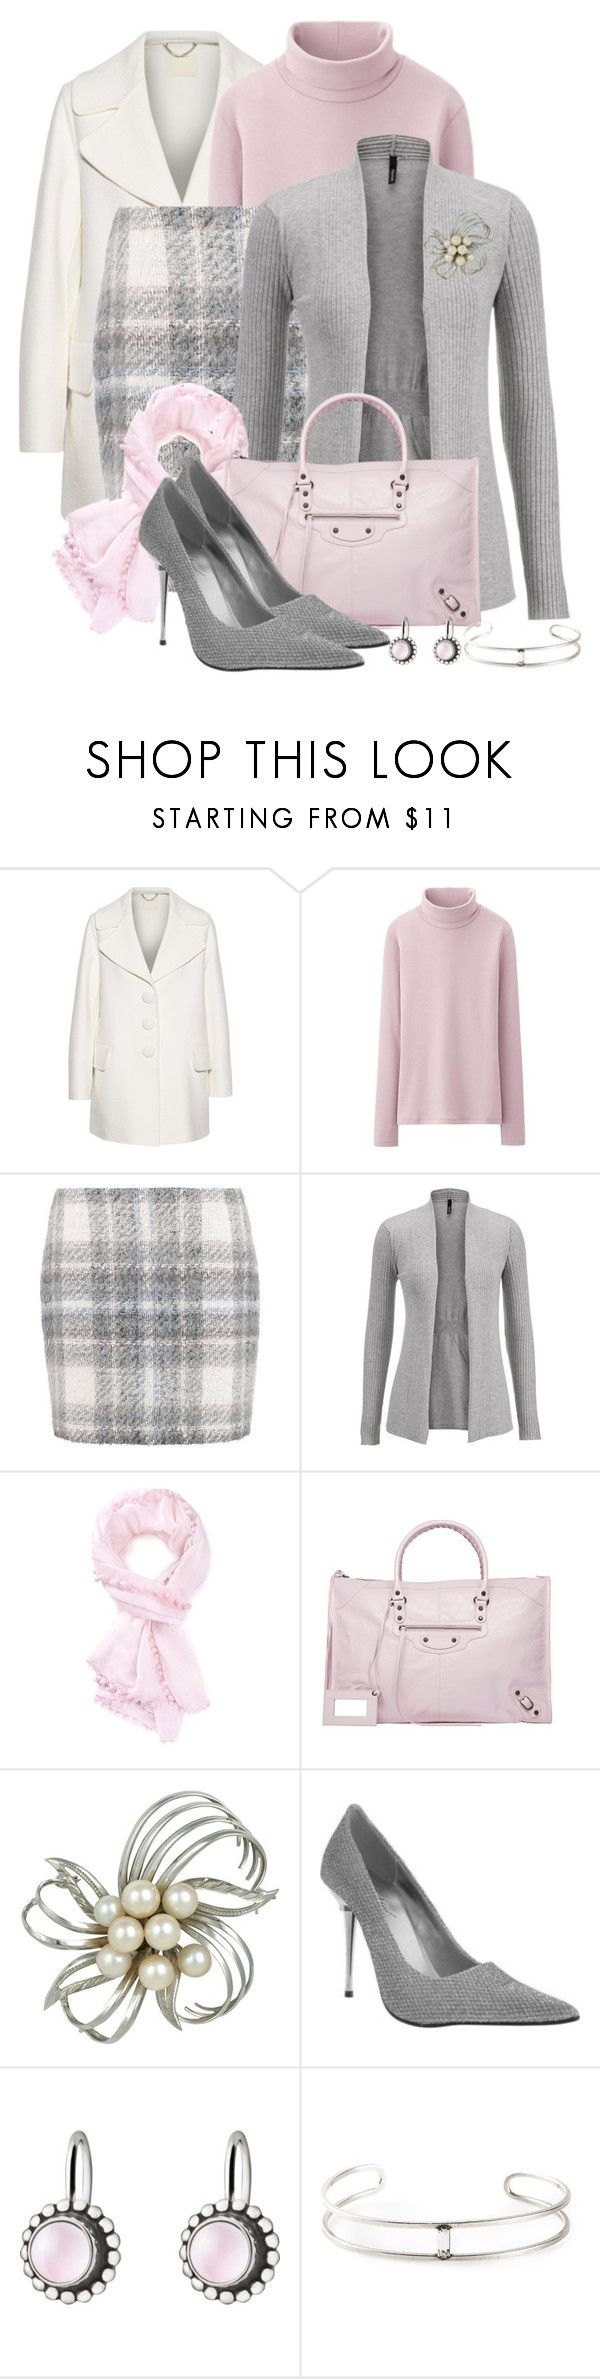 """Pink and Grey Plaid"" by cathy0402 ❤ liked on Polyvore featuring Marc Jacobs, Uniqlo, Expresso, maurices, Forever 21, Balenciaga, Sharon Mills, The Highest Heel, Georg Jensen and Gerard Yosca"